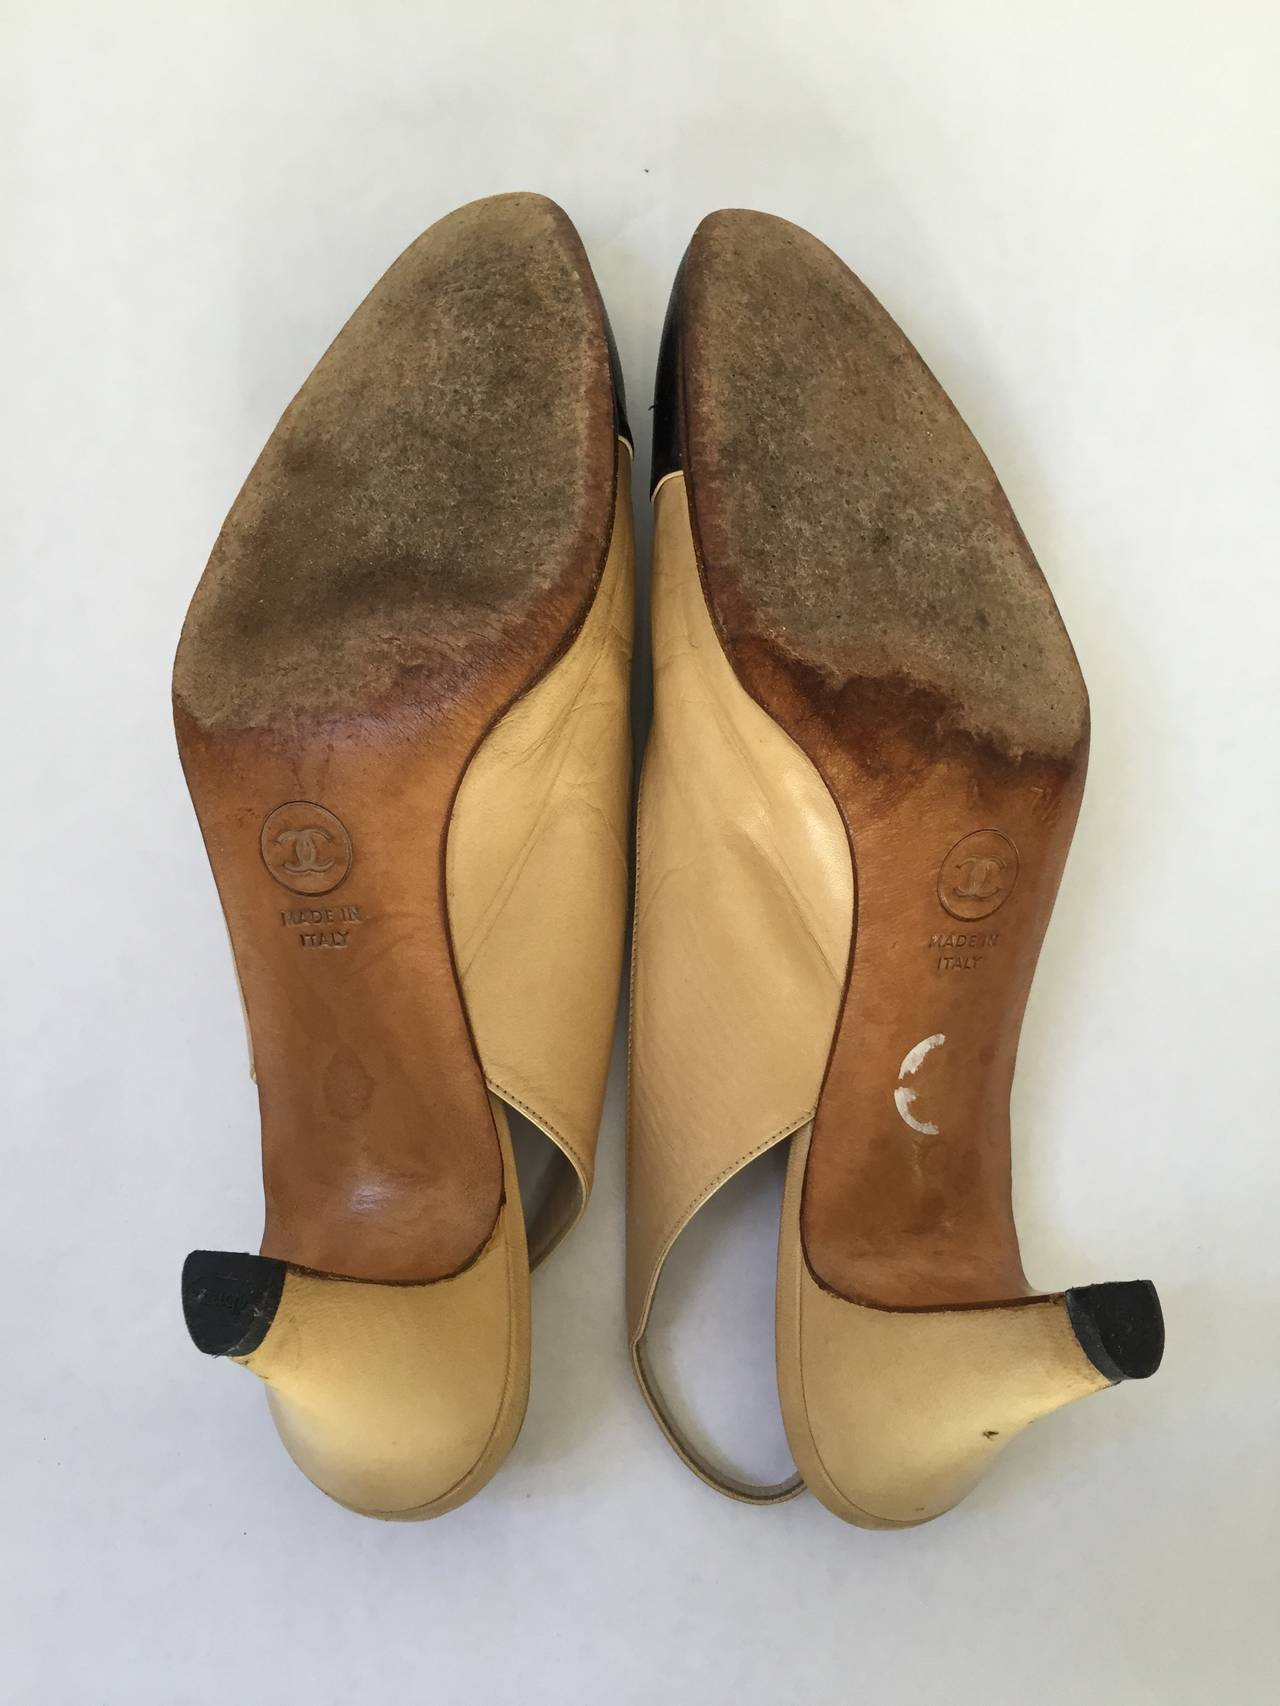 Chanel 1971 classic sling back shoes size 6.5 For Sale 4